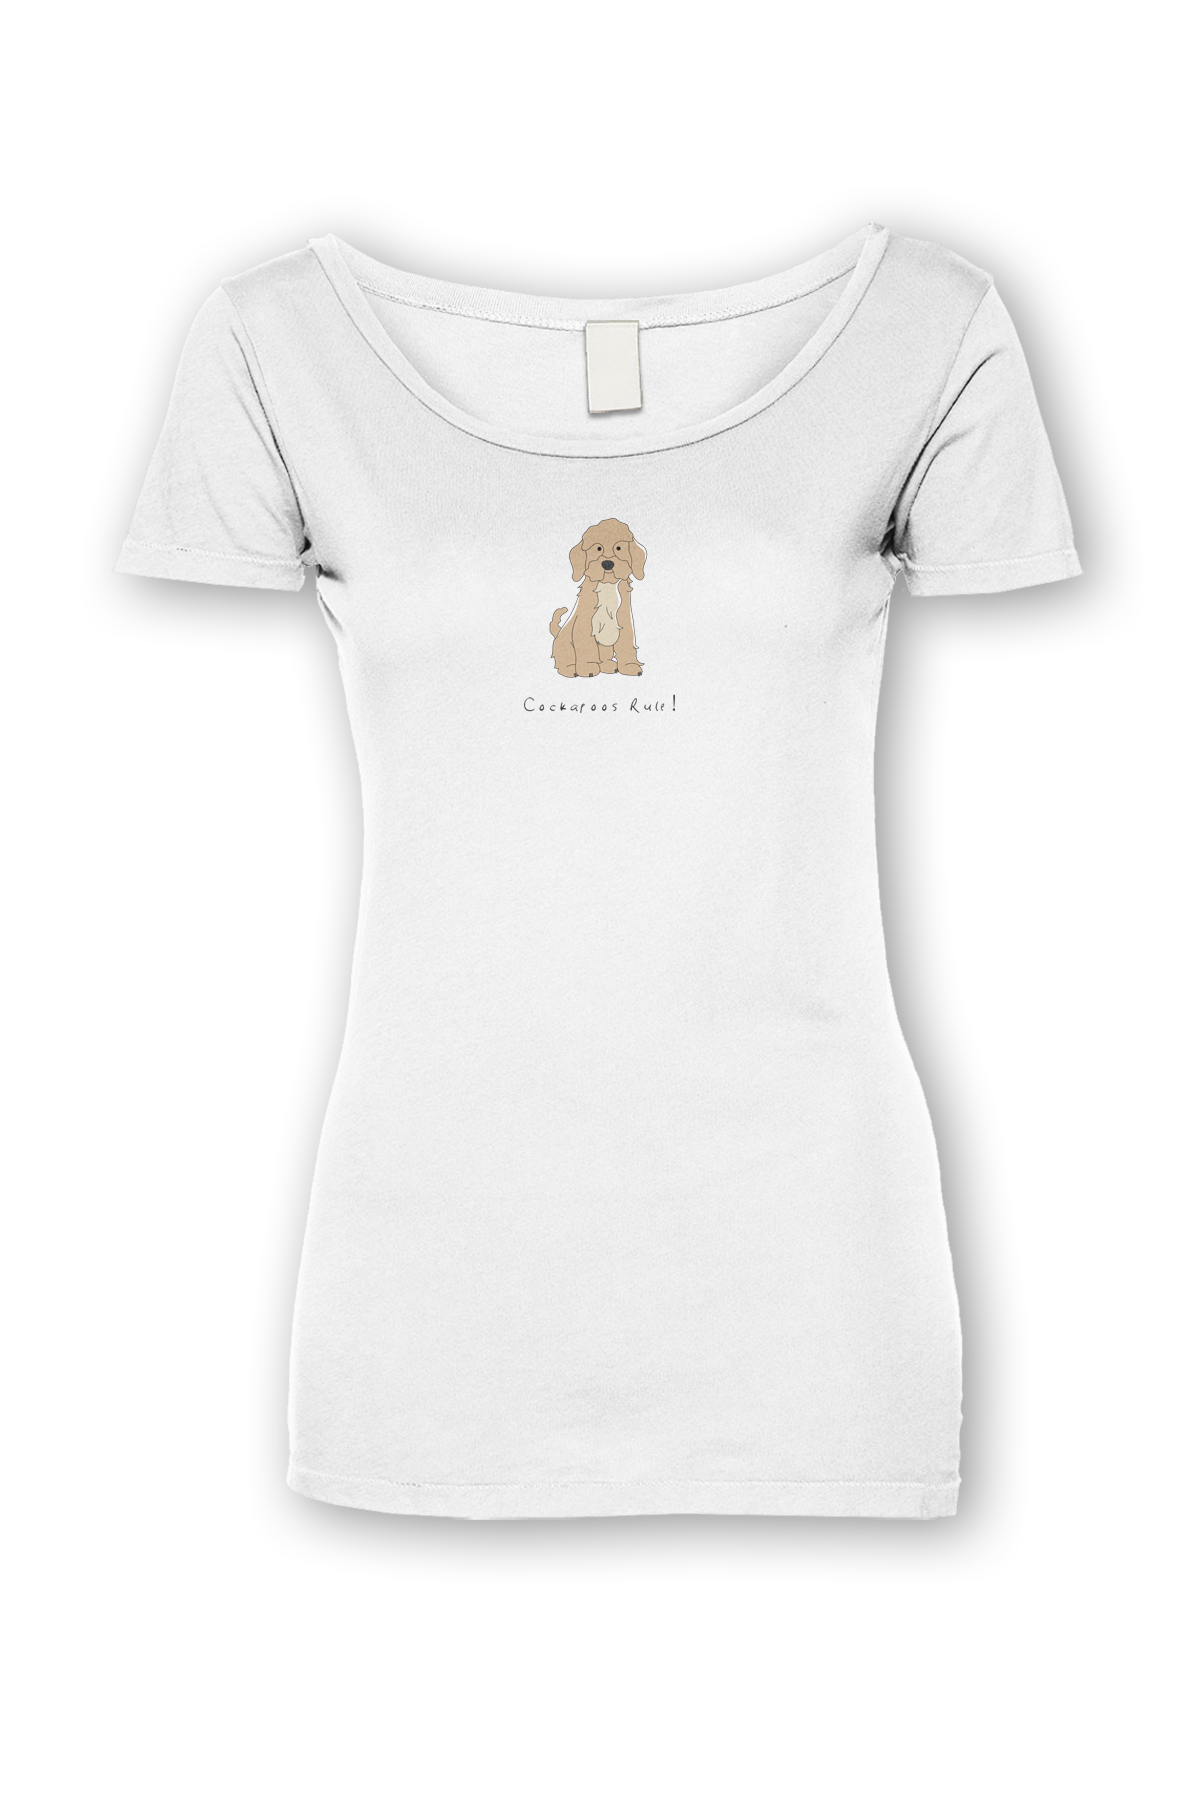 Ladies Sheer Scoop Neck T-Shirt - Cockerpoos Rule! White